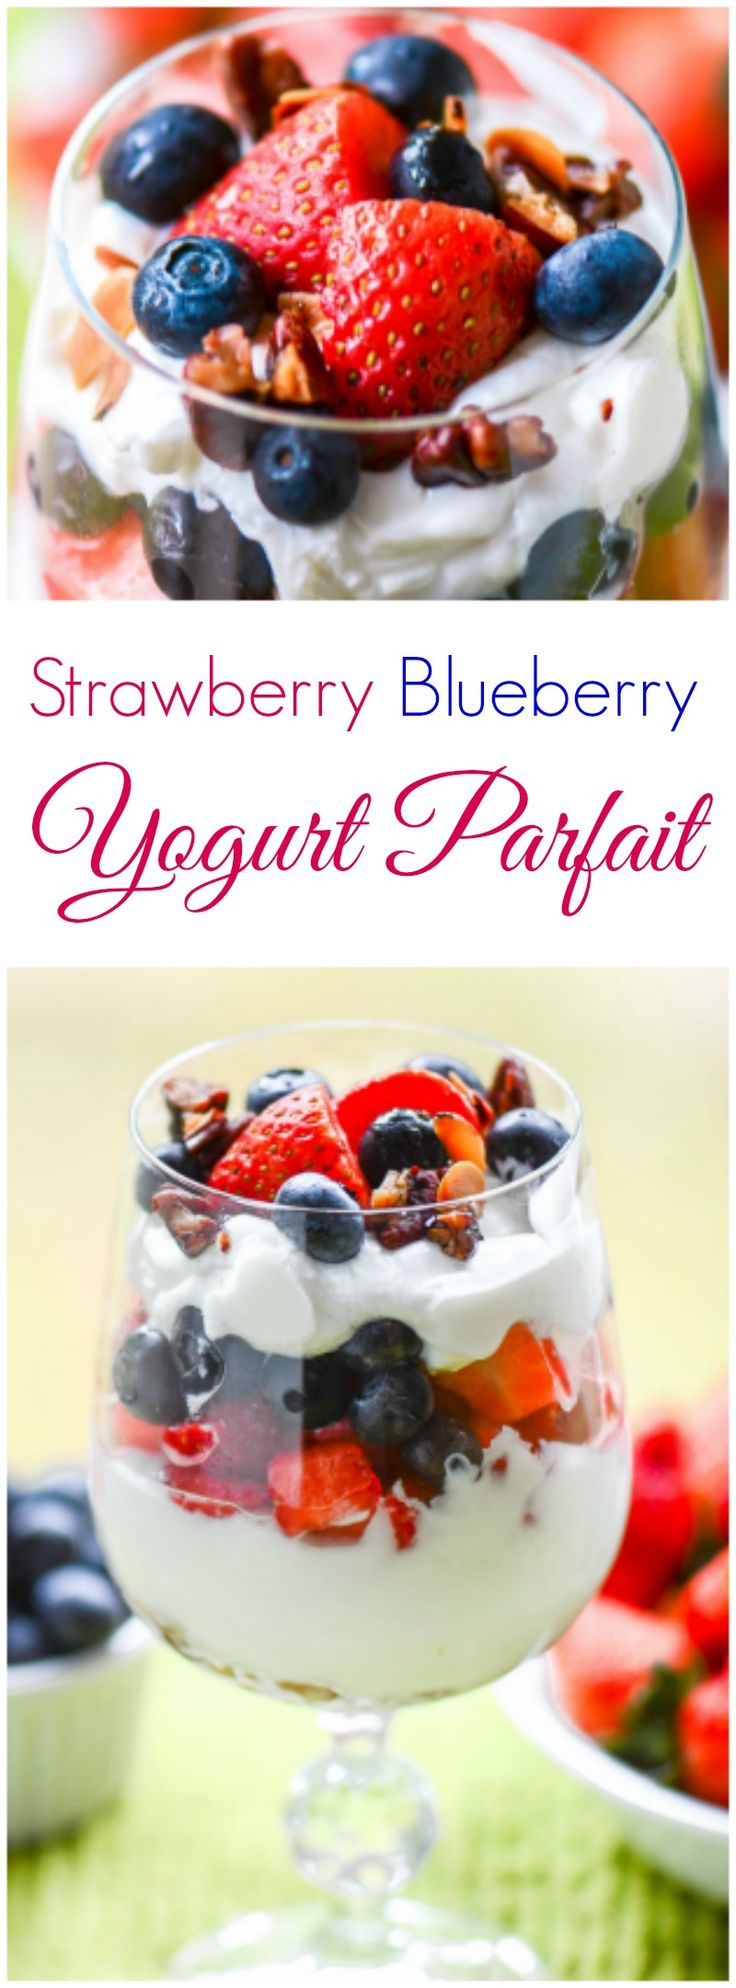 Strawberry Blueberry Yogurt Parfaits are sweet, creamy, crunchy healthy desserts made with fresh strawberries, blueberries, and organic greek yogurt.